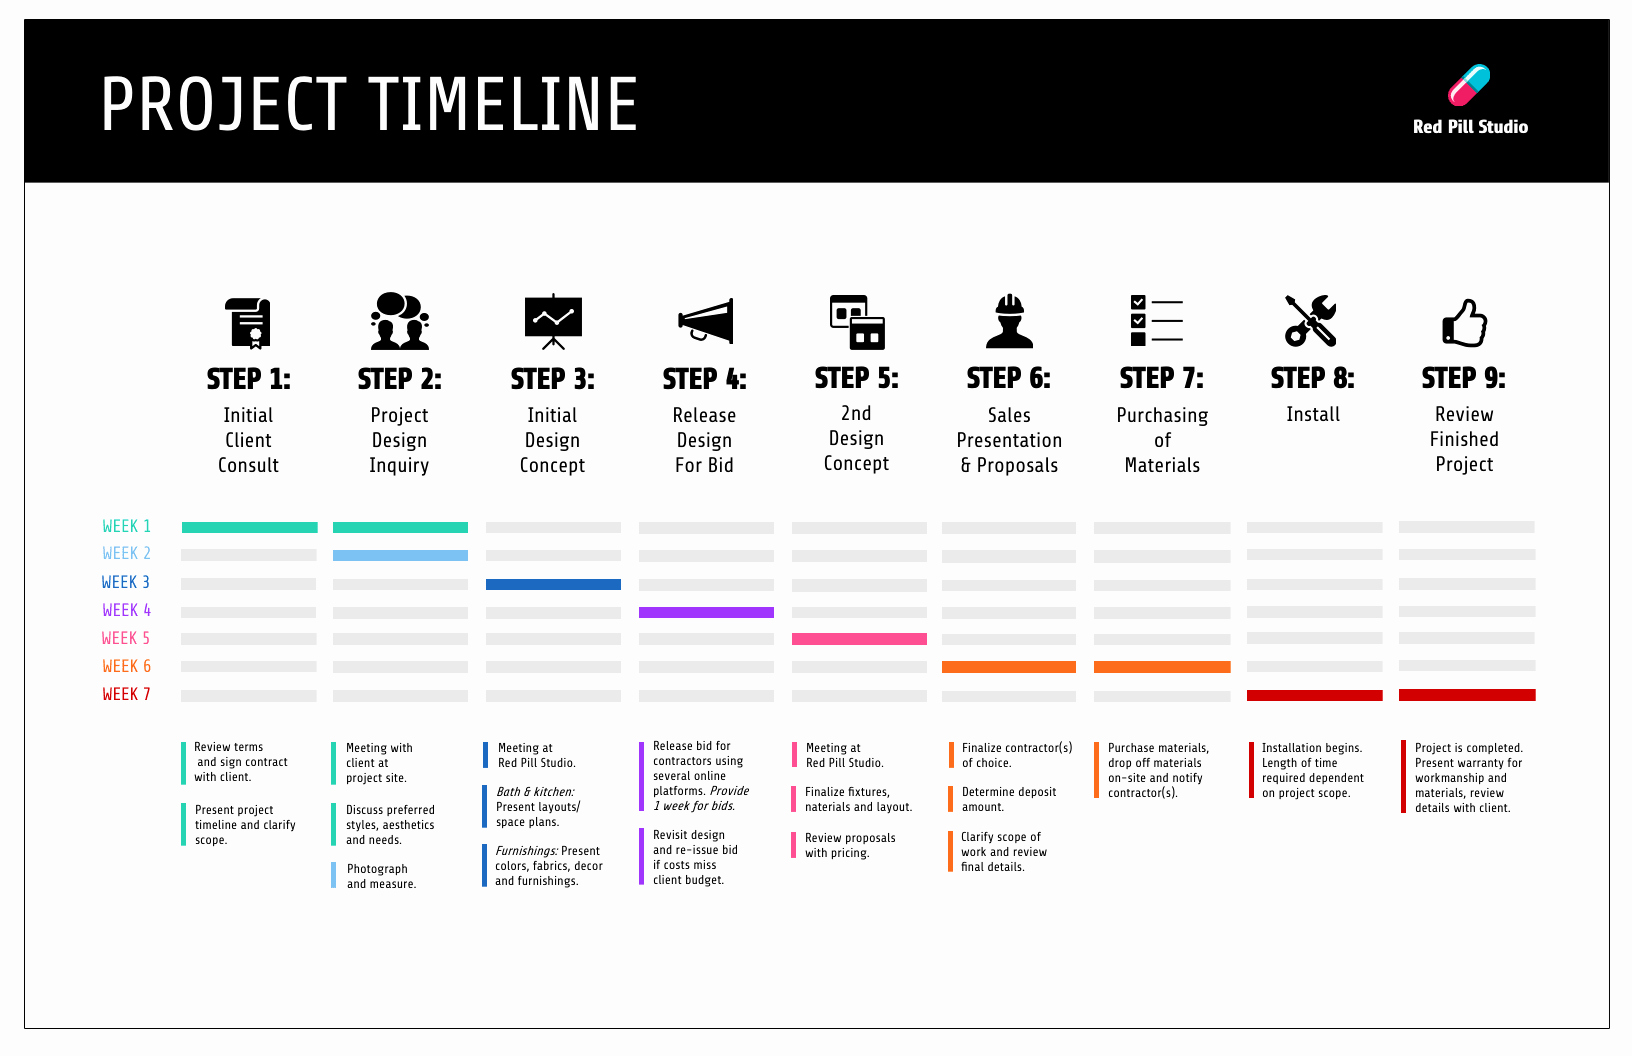 Strategic Plan Timeline Template Fresh 15 Project Plan Templates & Examples to Align Your Team